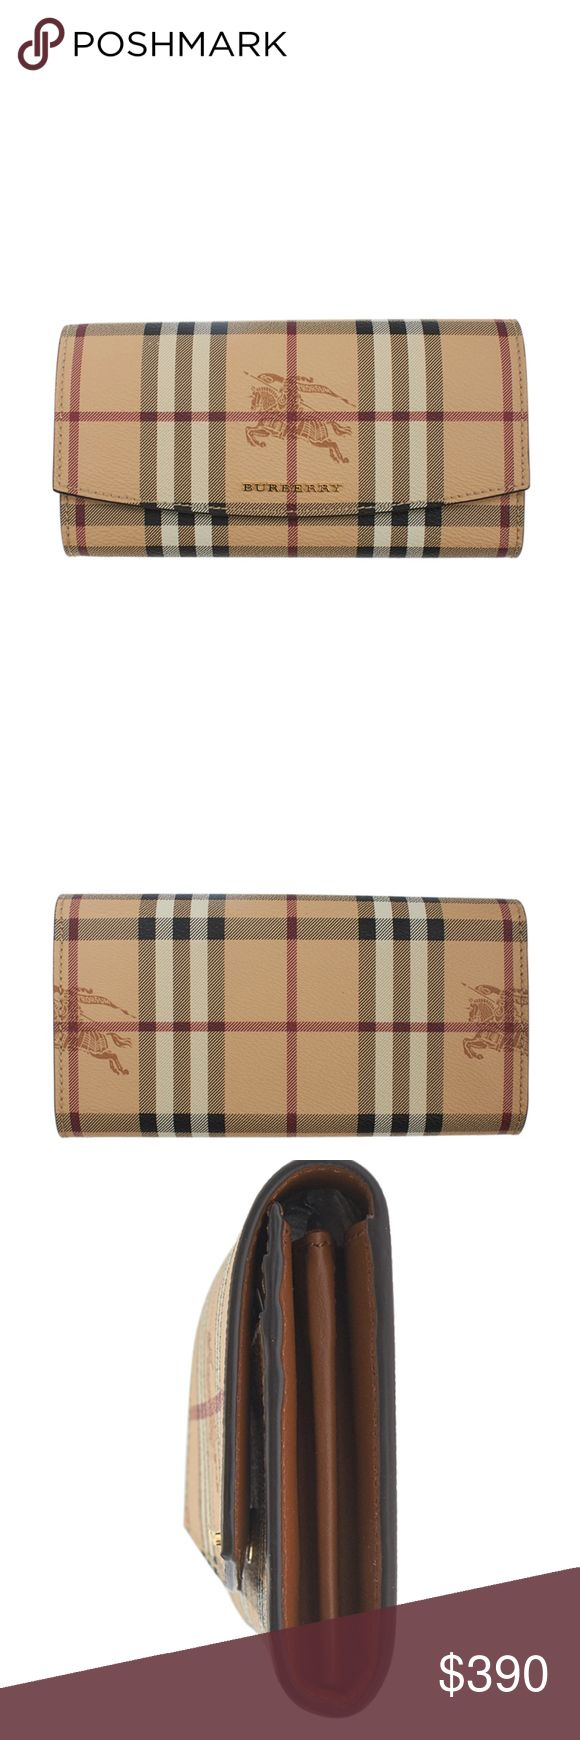 Burberry Beige Haymarket Check Wallet 138183 •Designer: Burberry •Overall Condition: New without tags •Type: Snap •Material: Canvas •Origin: Romania •Color: Beige •Interior Lining: Canvas, Leather •Interior Color: Brown •Hardware: Gold-Tone •Meas (L x W x H): 8x1x4 •Exterior Pockets: 0 •Interior Pockets: 2 •Odor: None •Weight: 0.675 lbs •Size: M •Production Code: ROPELF1071SEE •Card Slots: 14 •Overall Condition Description: This Burberry wallet is new without tags.  •Ref: 138503-138183-PMS-S…